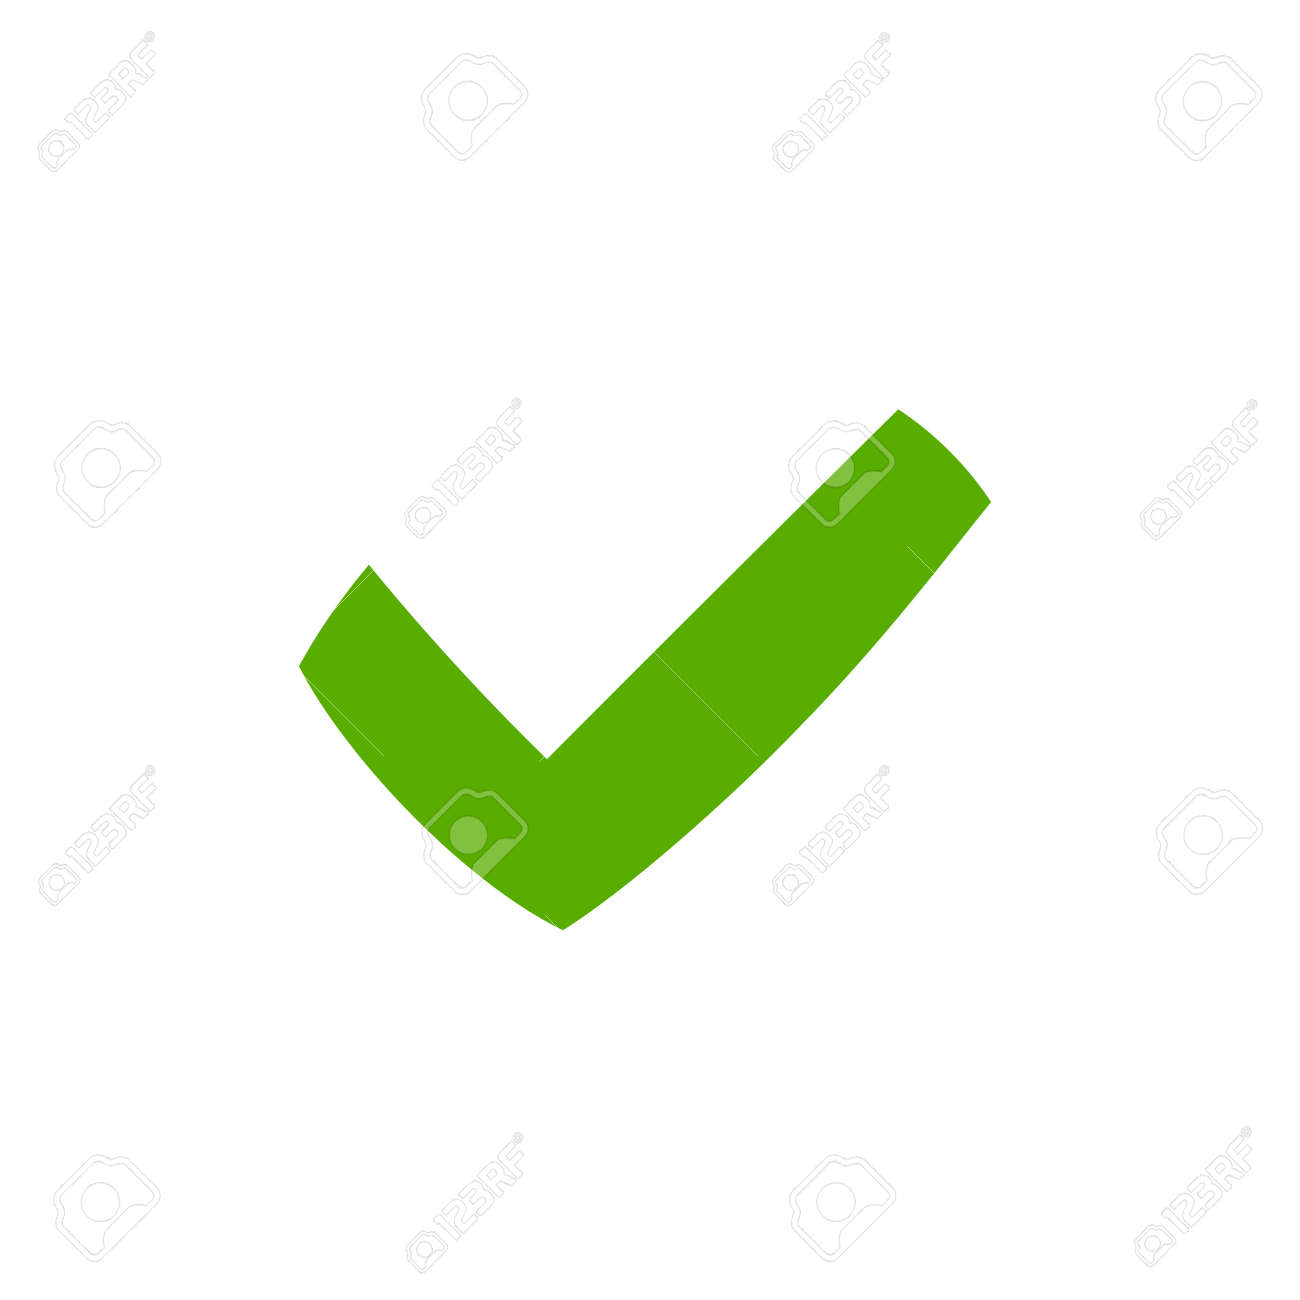 tick sign element green checkmark icon isolated on white background rh 123rf com check mark graphic excel check mark graphic art